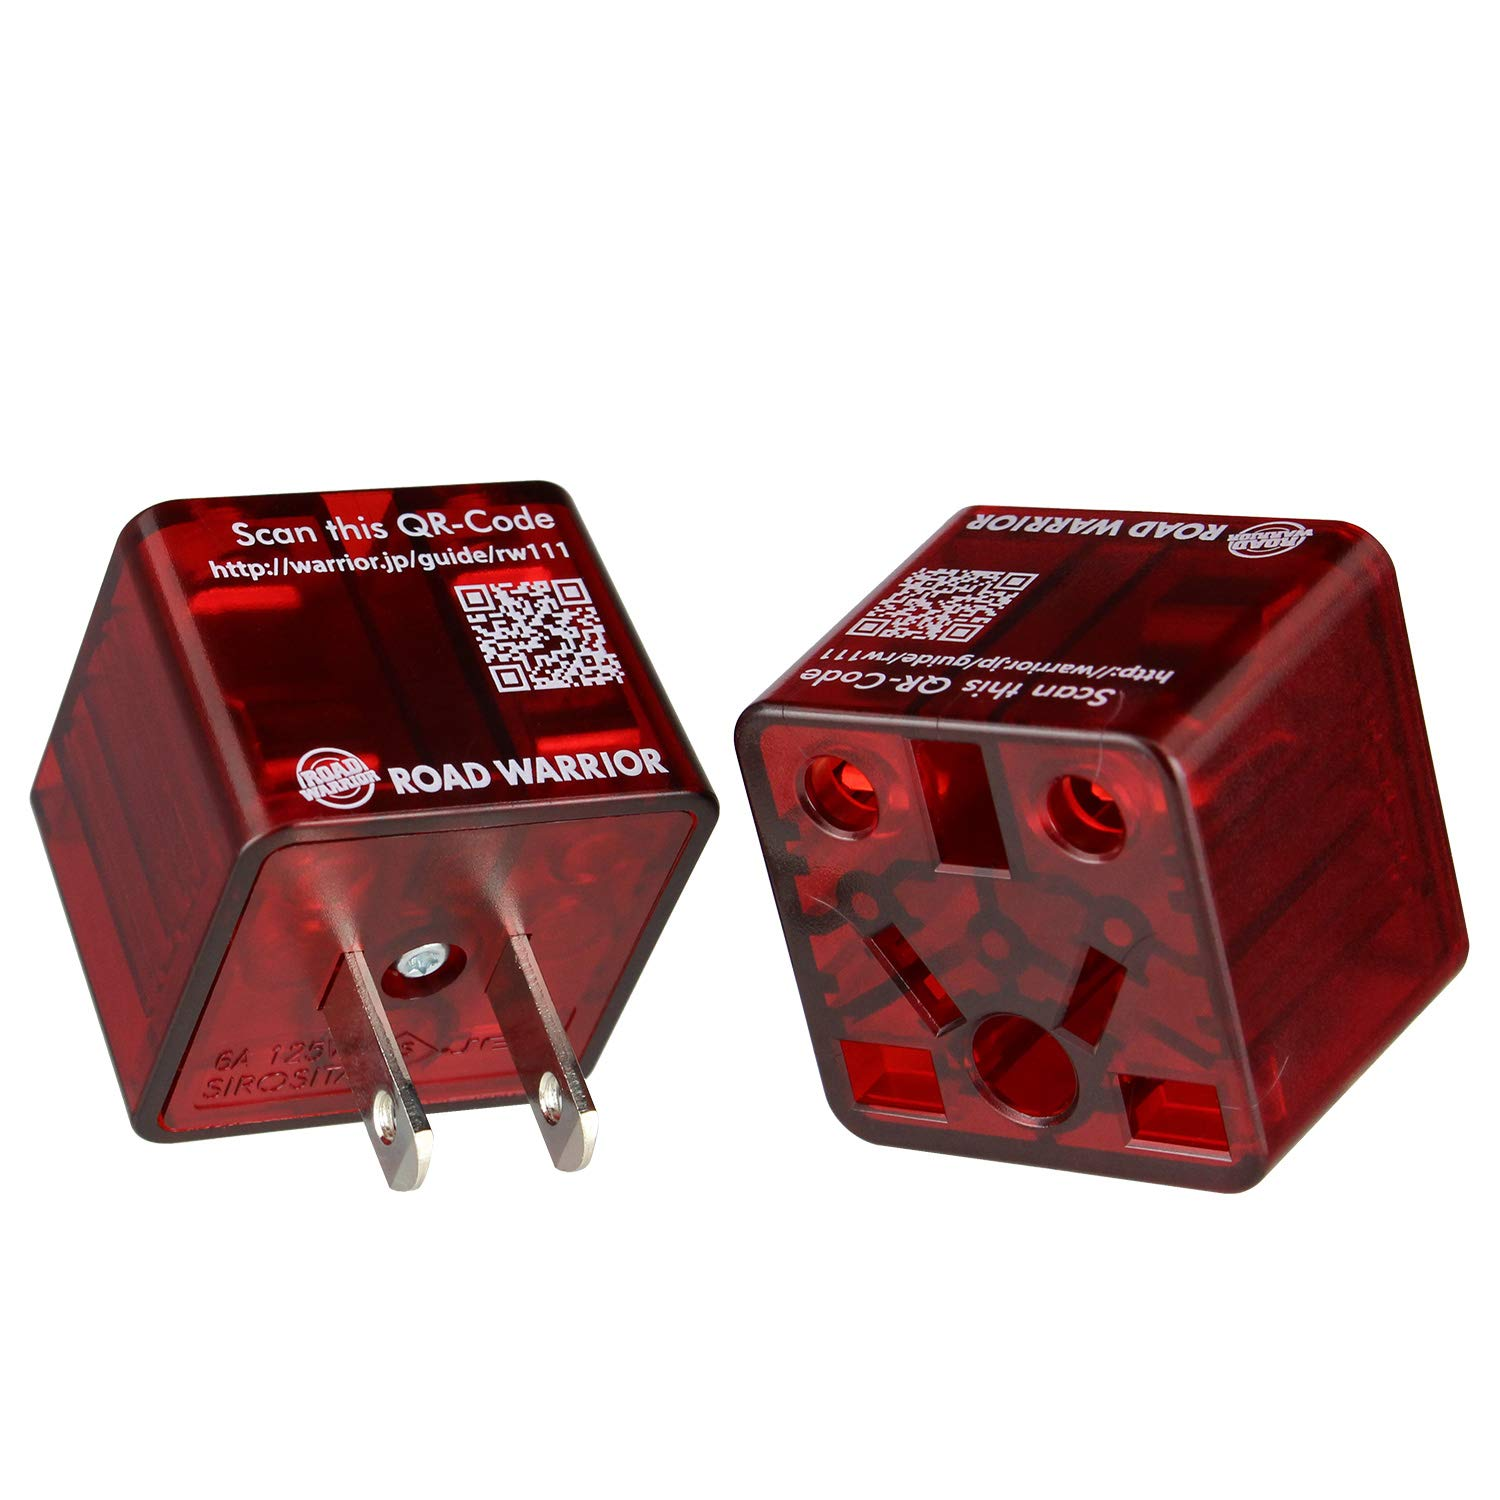 [2 Pack] ROAD WARRIOR US Travel Plug Adapter EU/UK/CN/AU/IN to USA (Type A) - RW111CR-US